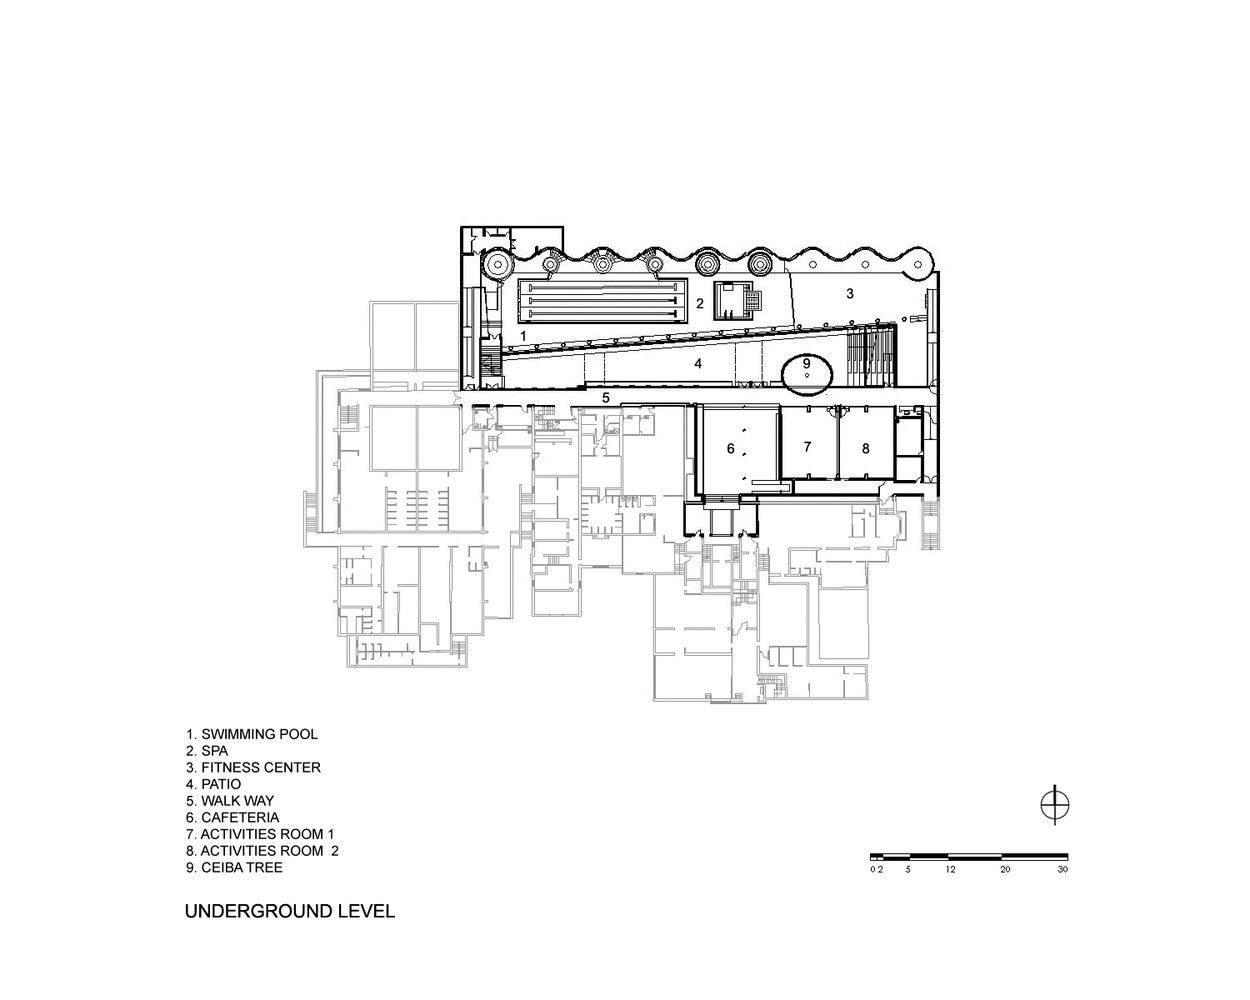 gallery of p w c c spa fitness center plan arquitectos